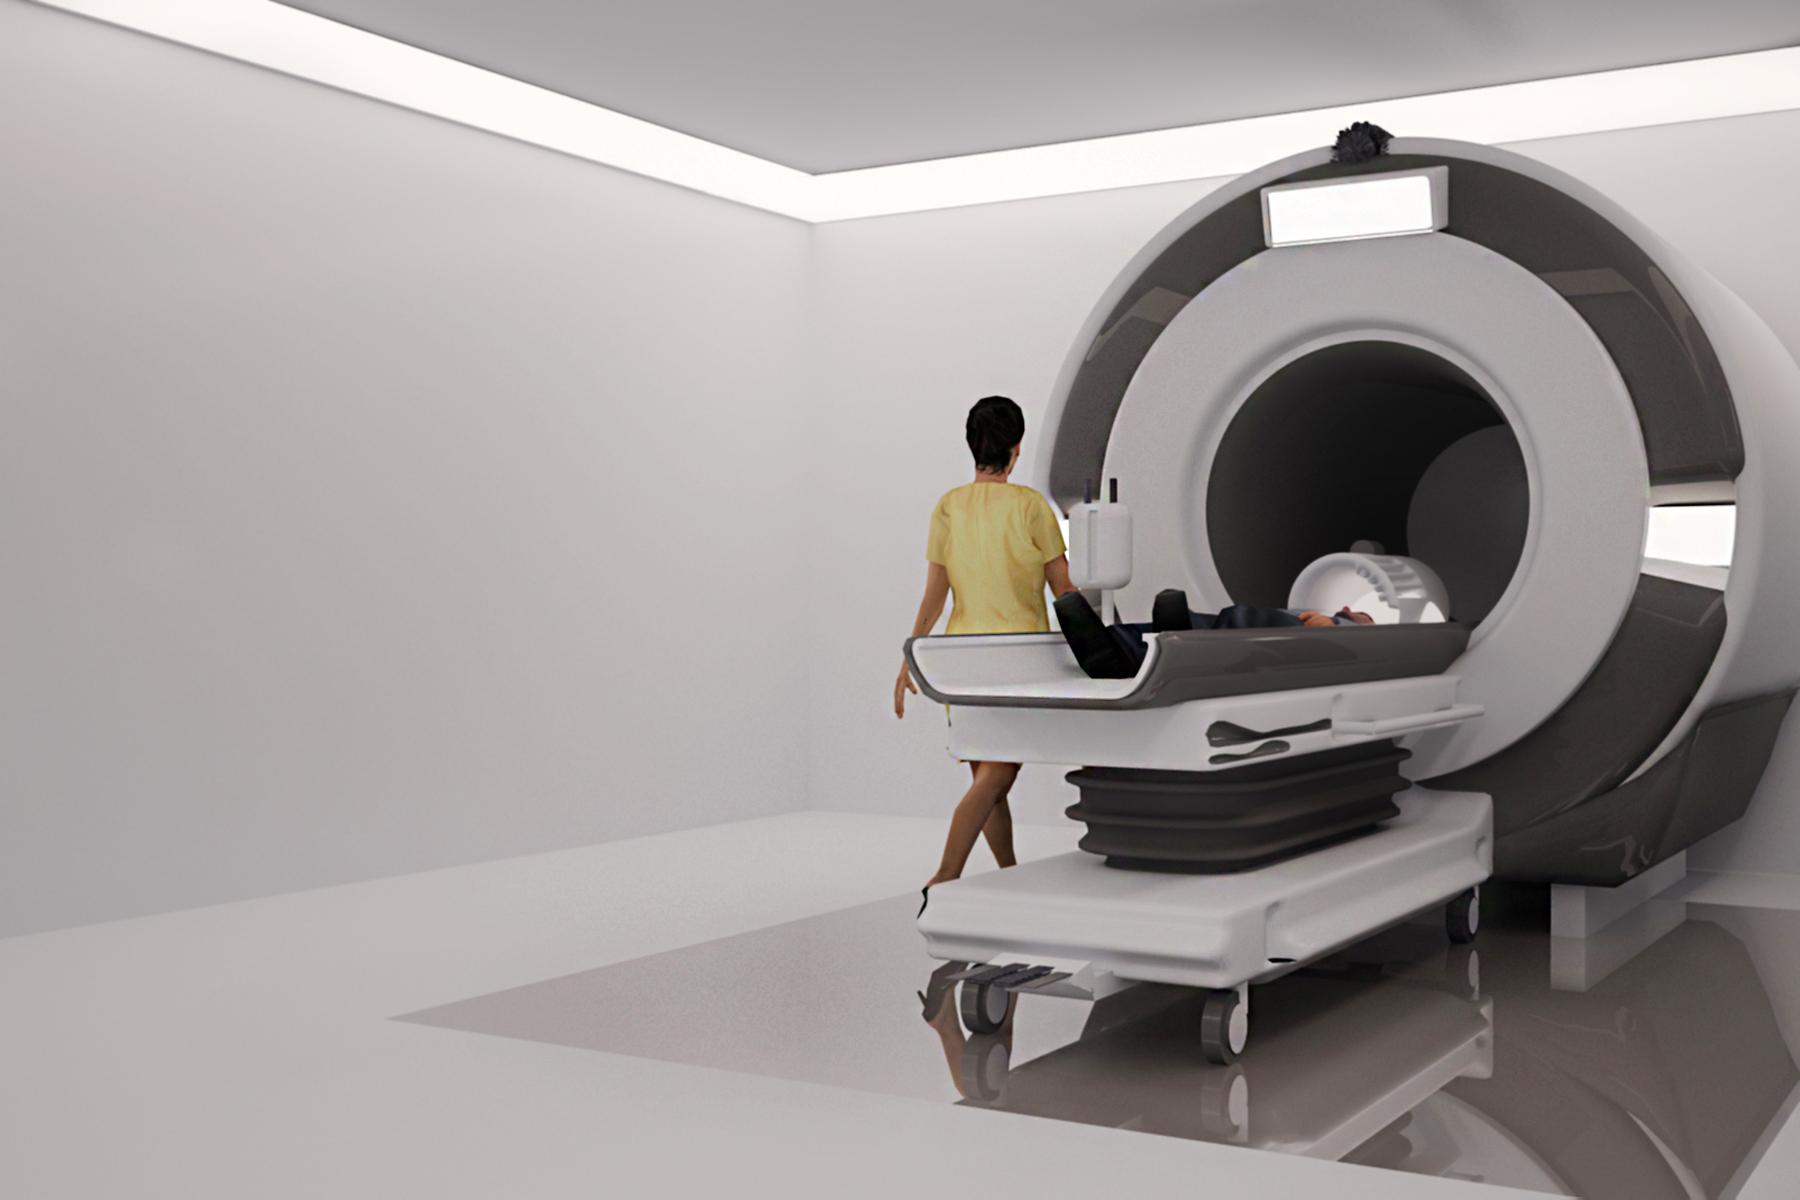 MRI machine in 3d max vray 3.0 image